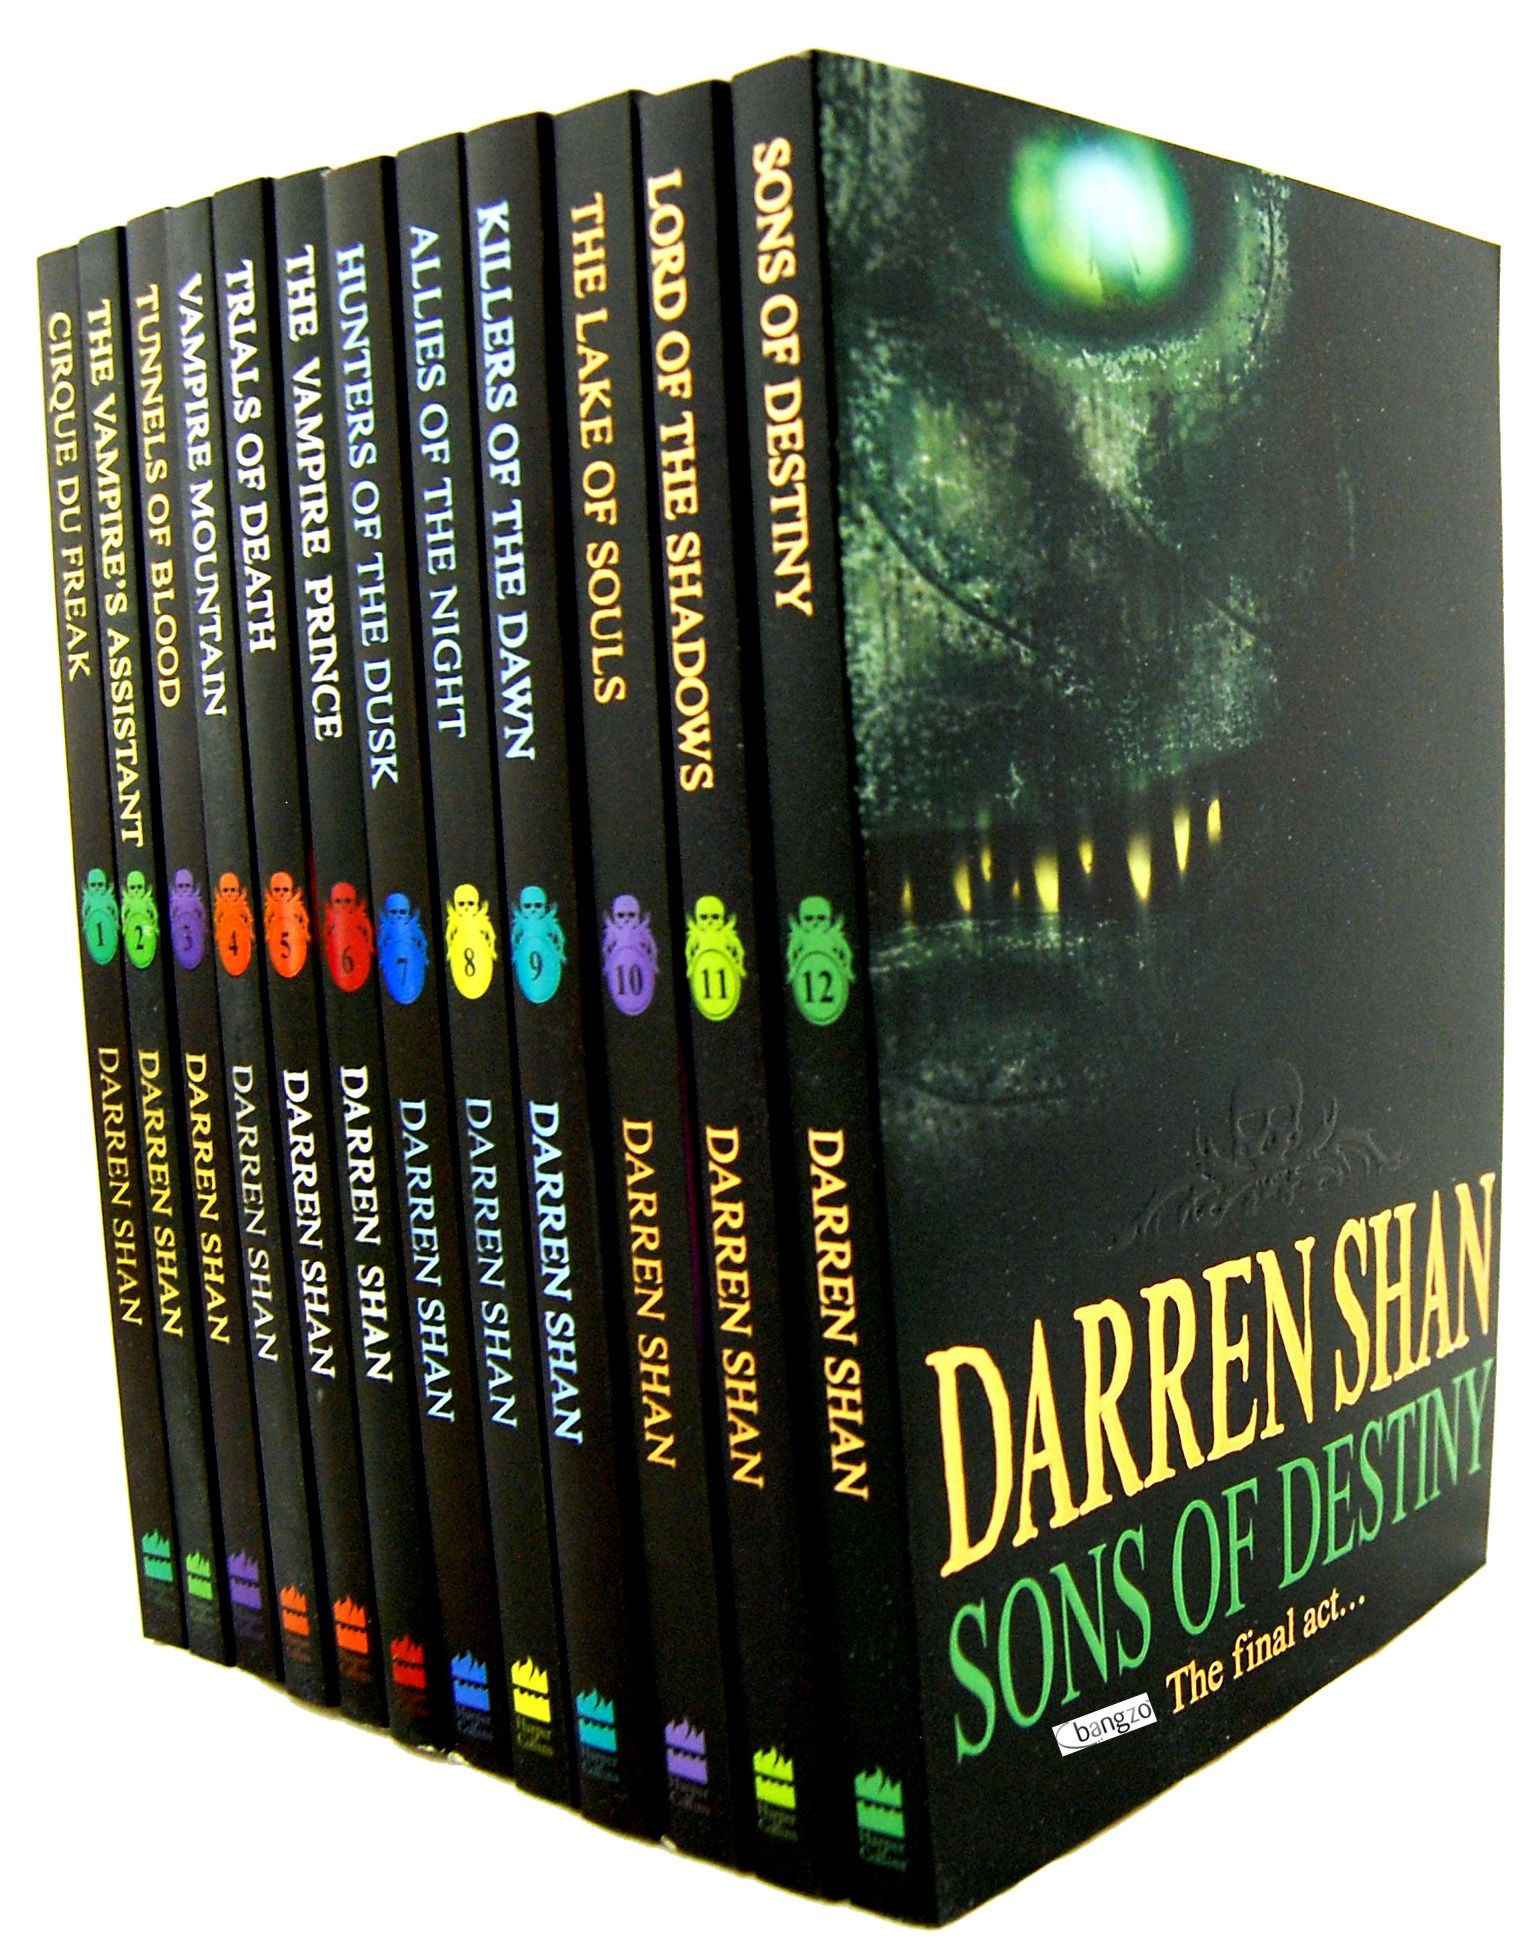 Darren Shan Series Took Me A While To Get Each Individual Book But Glad That I Read Them All As One Of The Best Series Of Books Fantasy Books Books Book